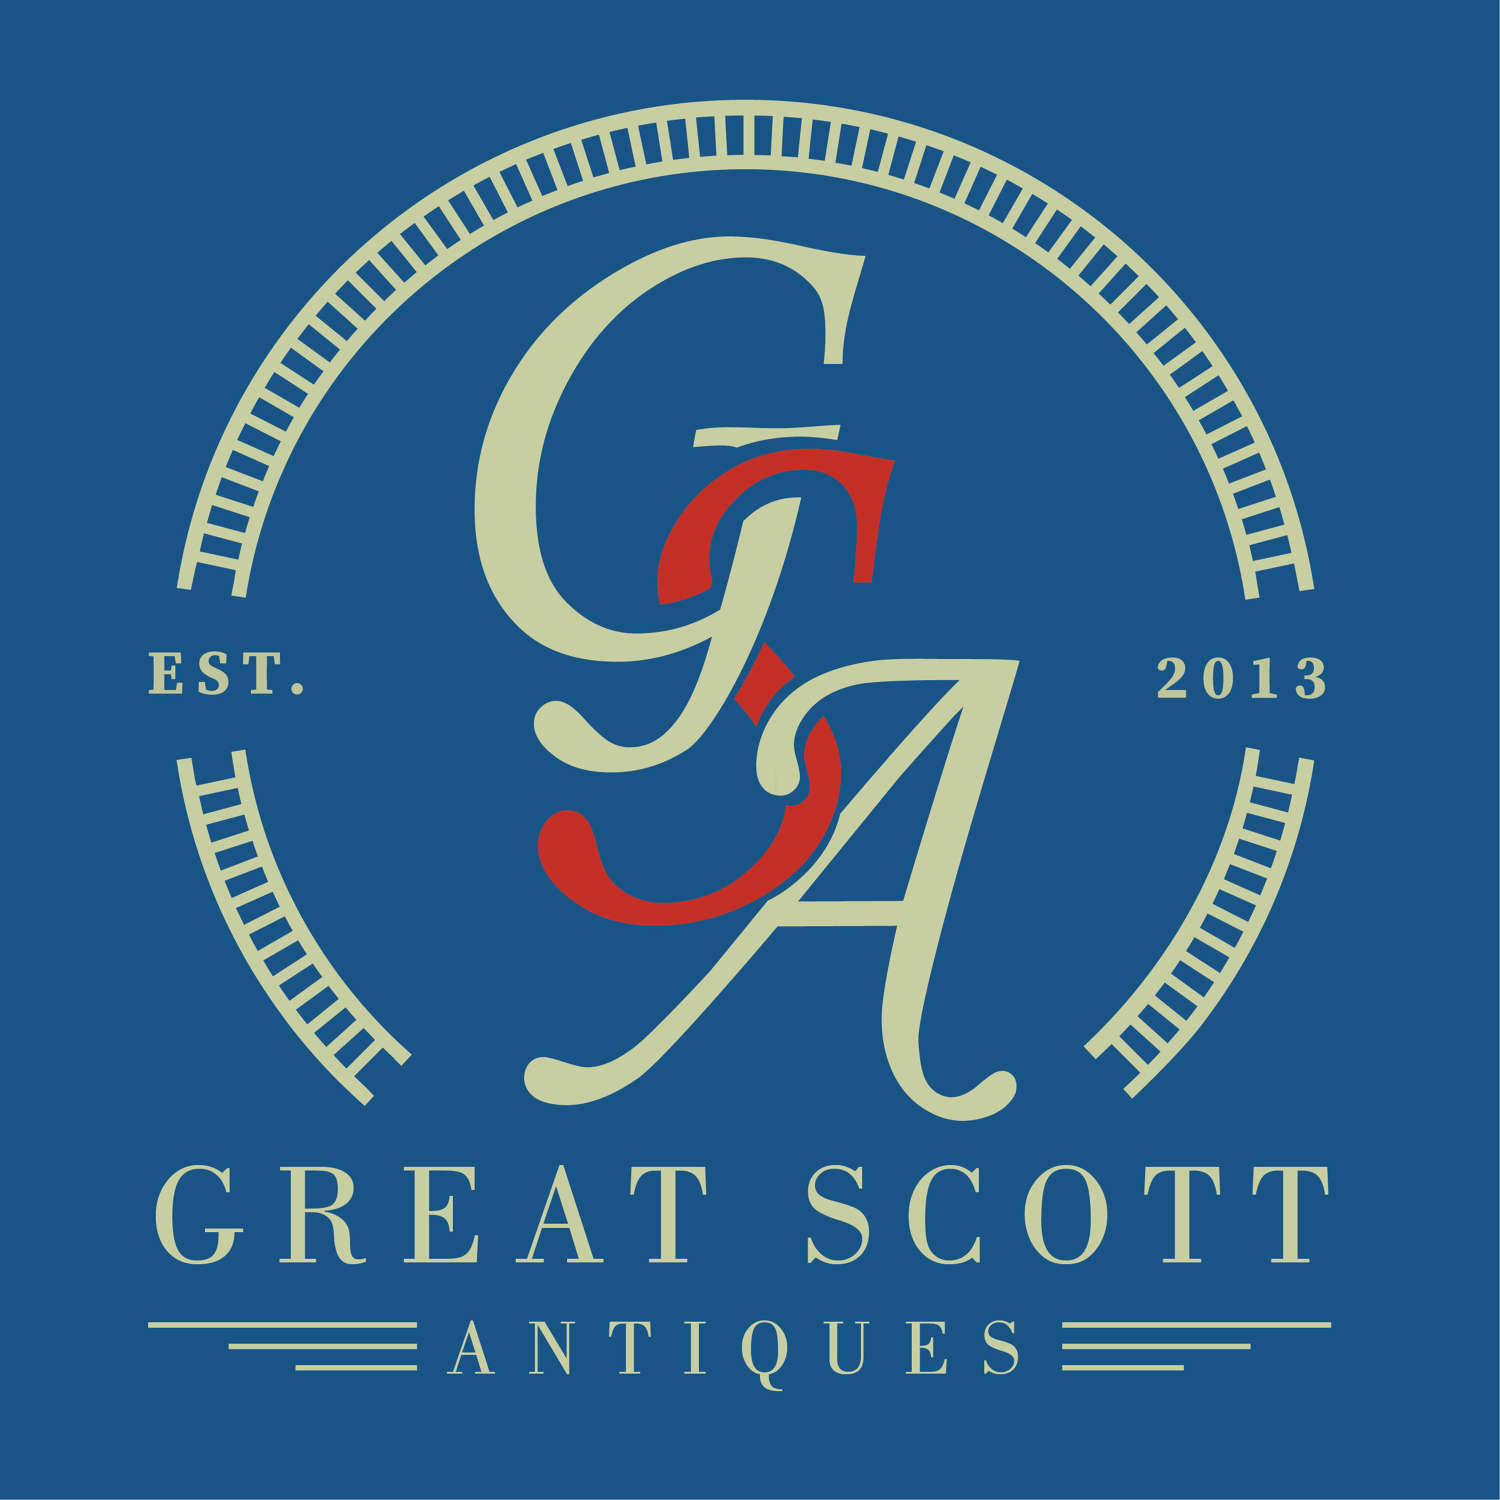 A Christmas Message From Great Scott Antiques